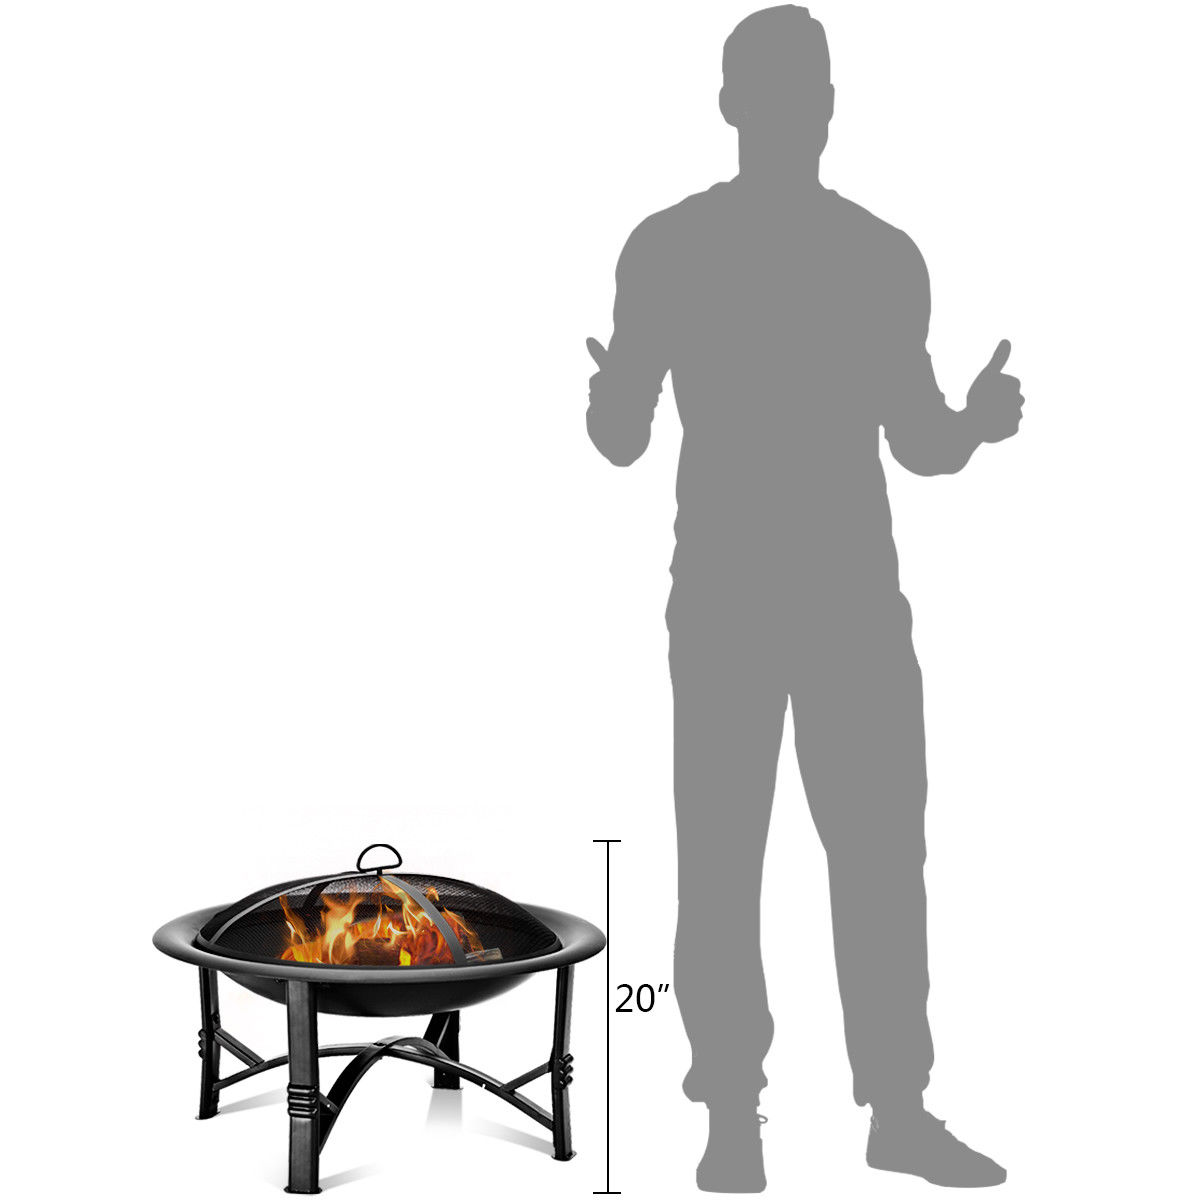 """30"""" Outdoor Fire Pit BBQ Portable Camping Firepit Heater Patio Garden Grill - image 1 of 10"""